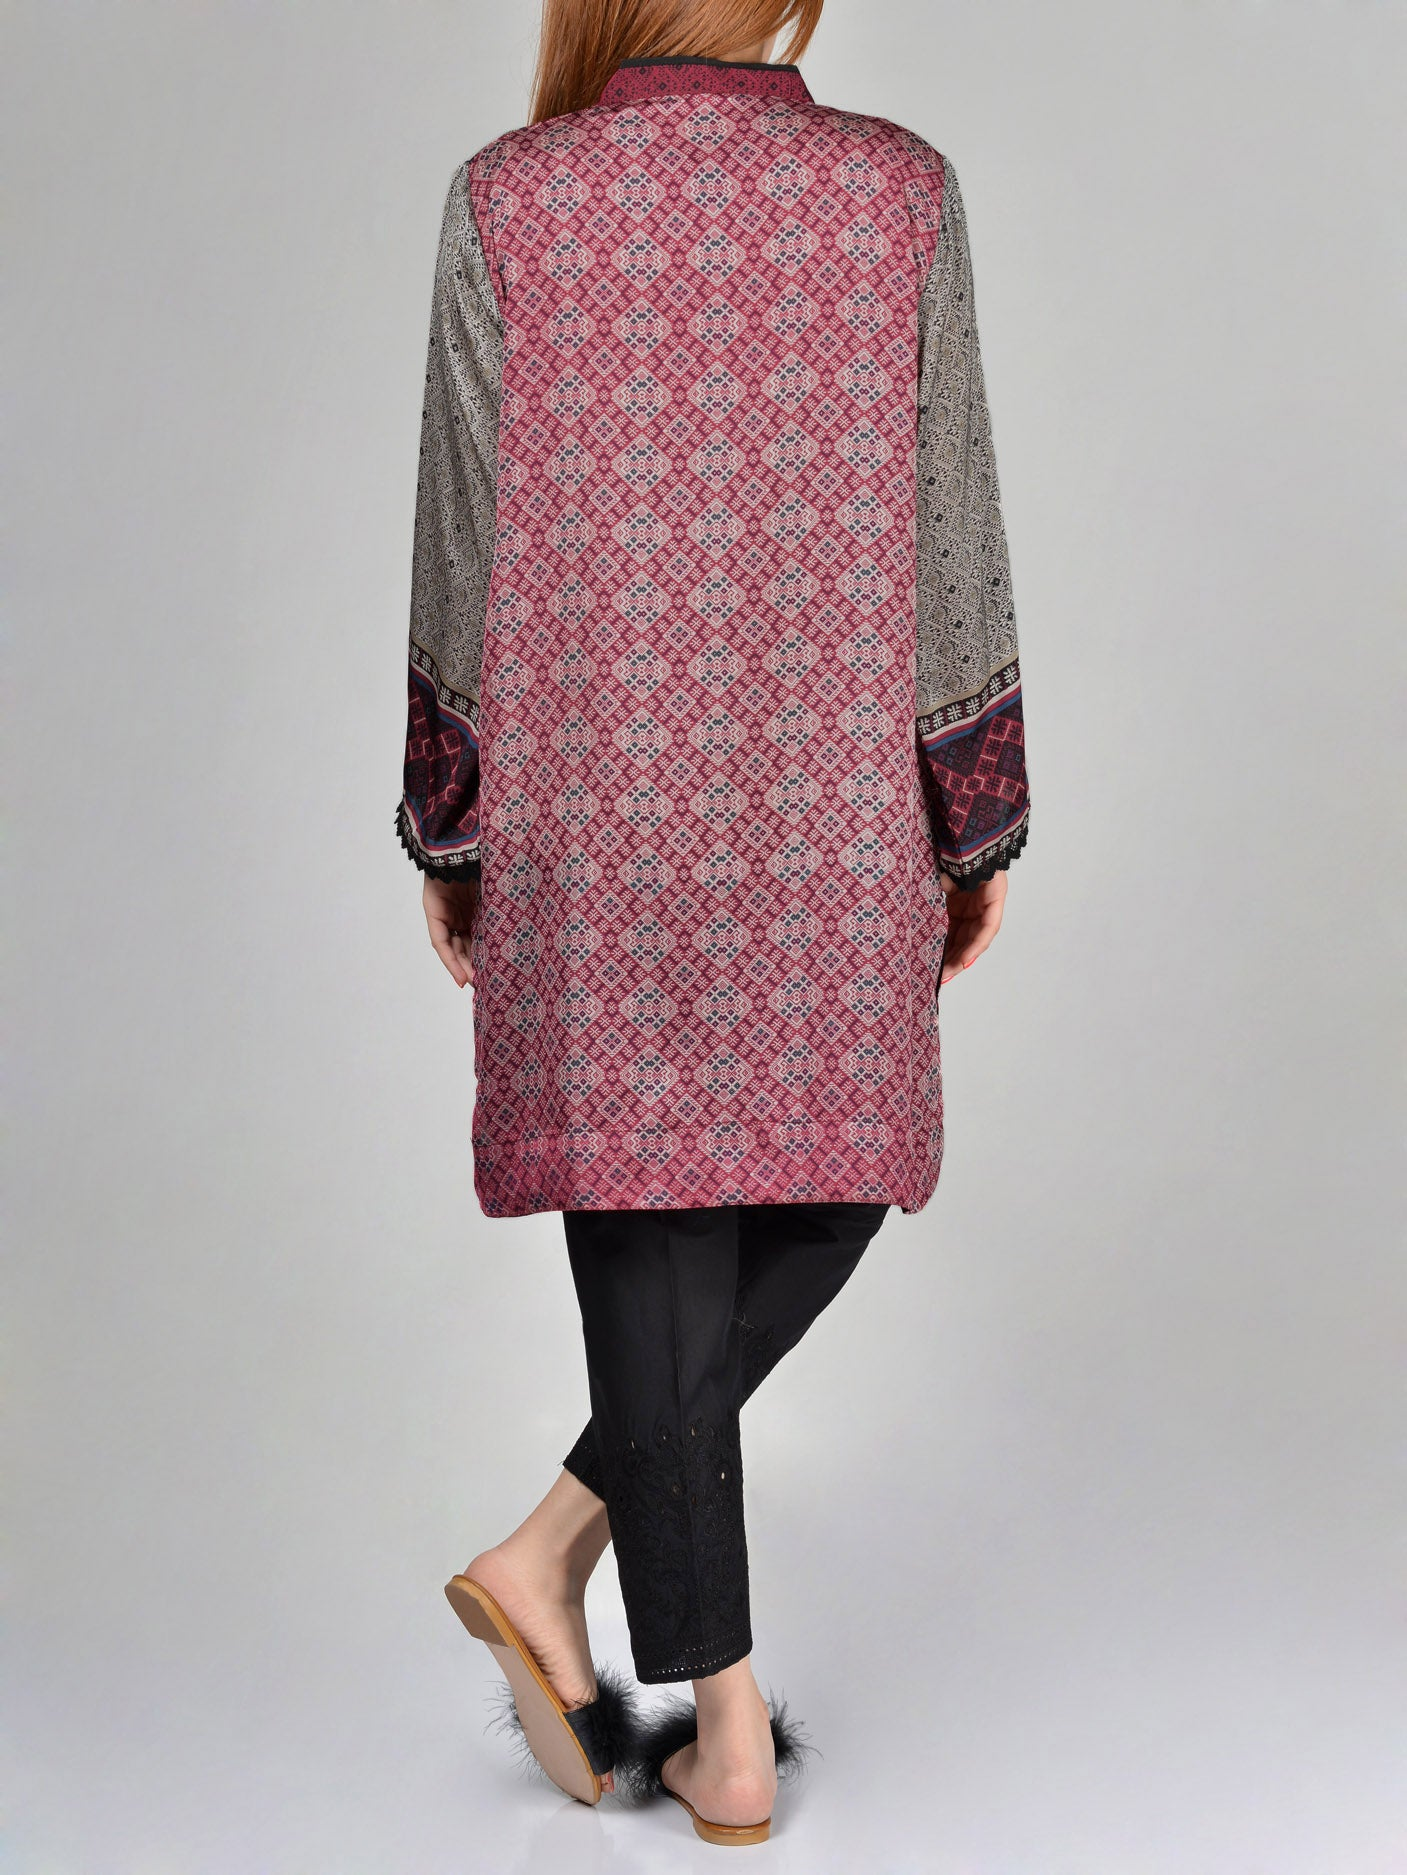 Buy Limelight Printed Silk Shirt F1581 Online in Pakistan | Limelight.pk